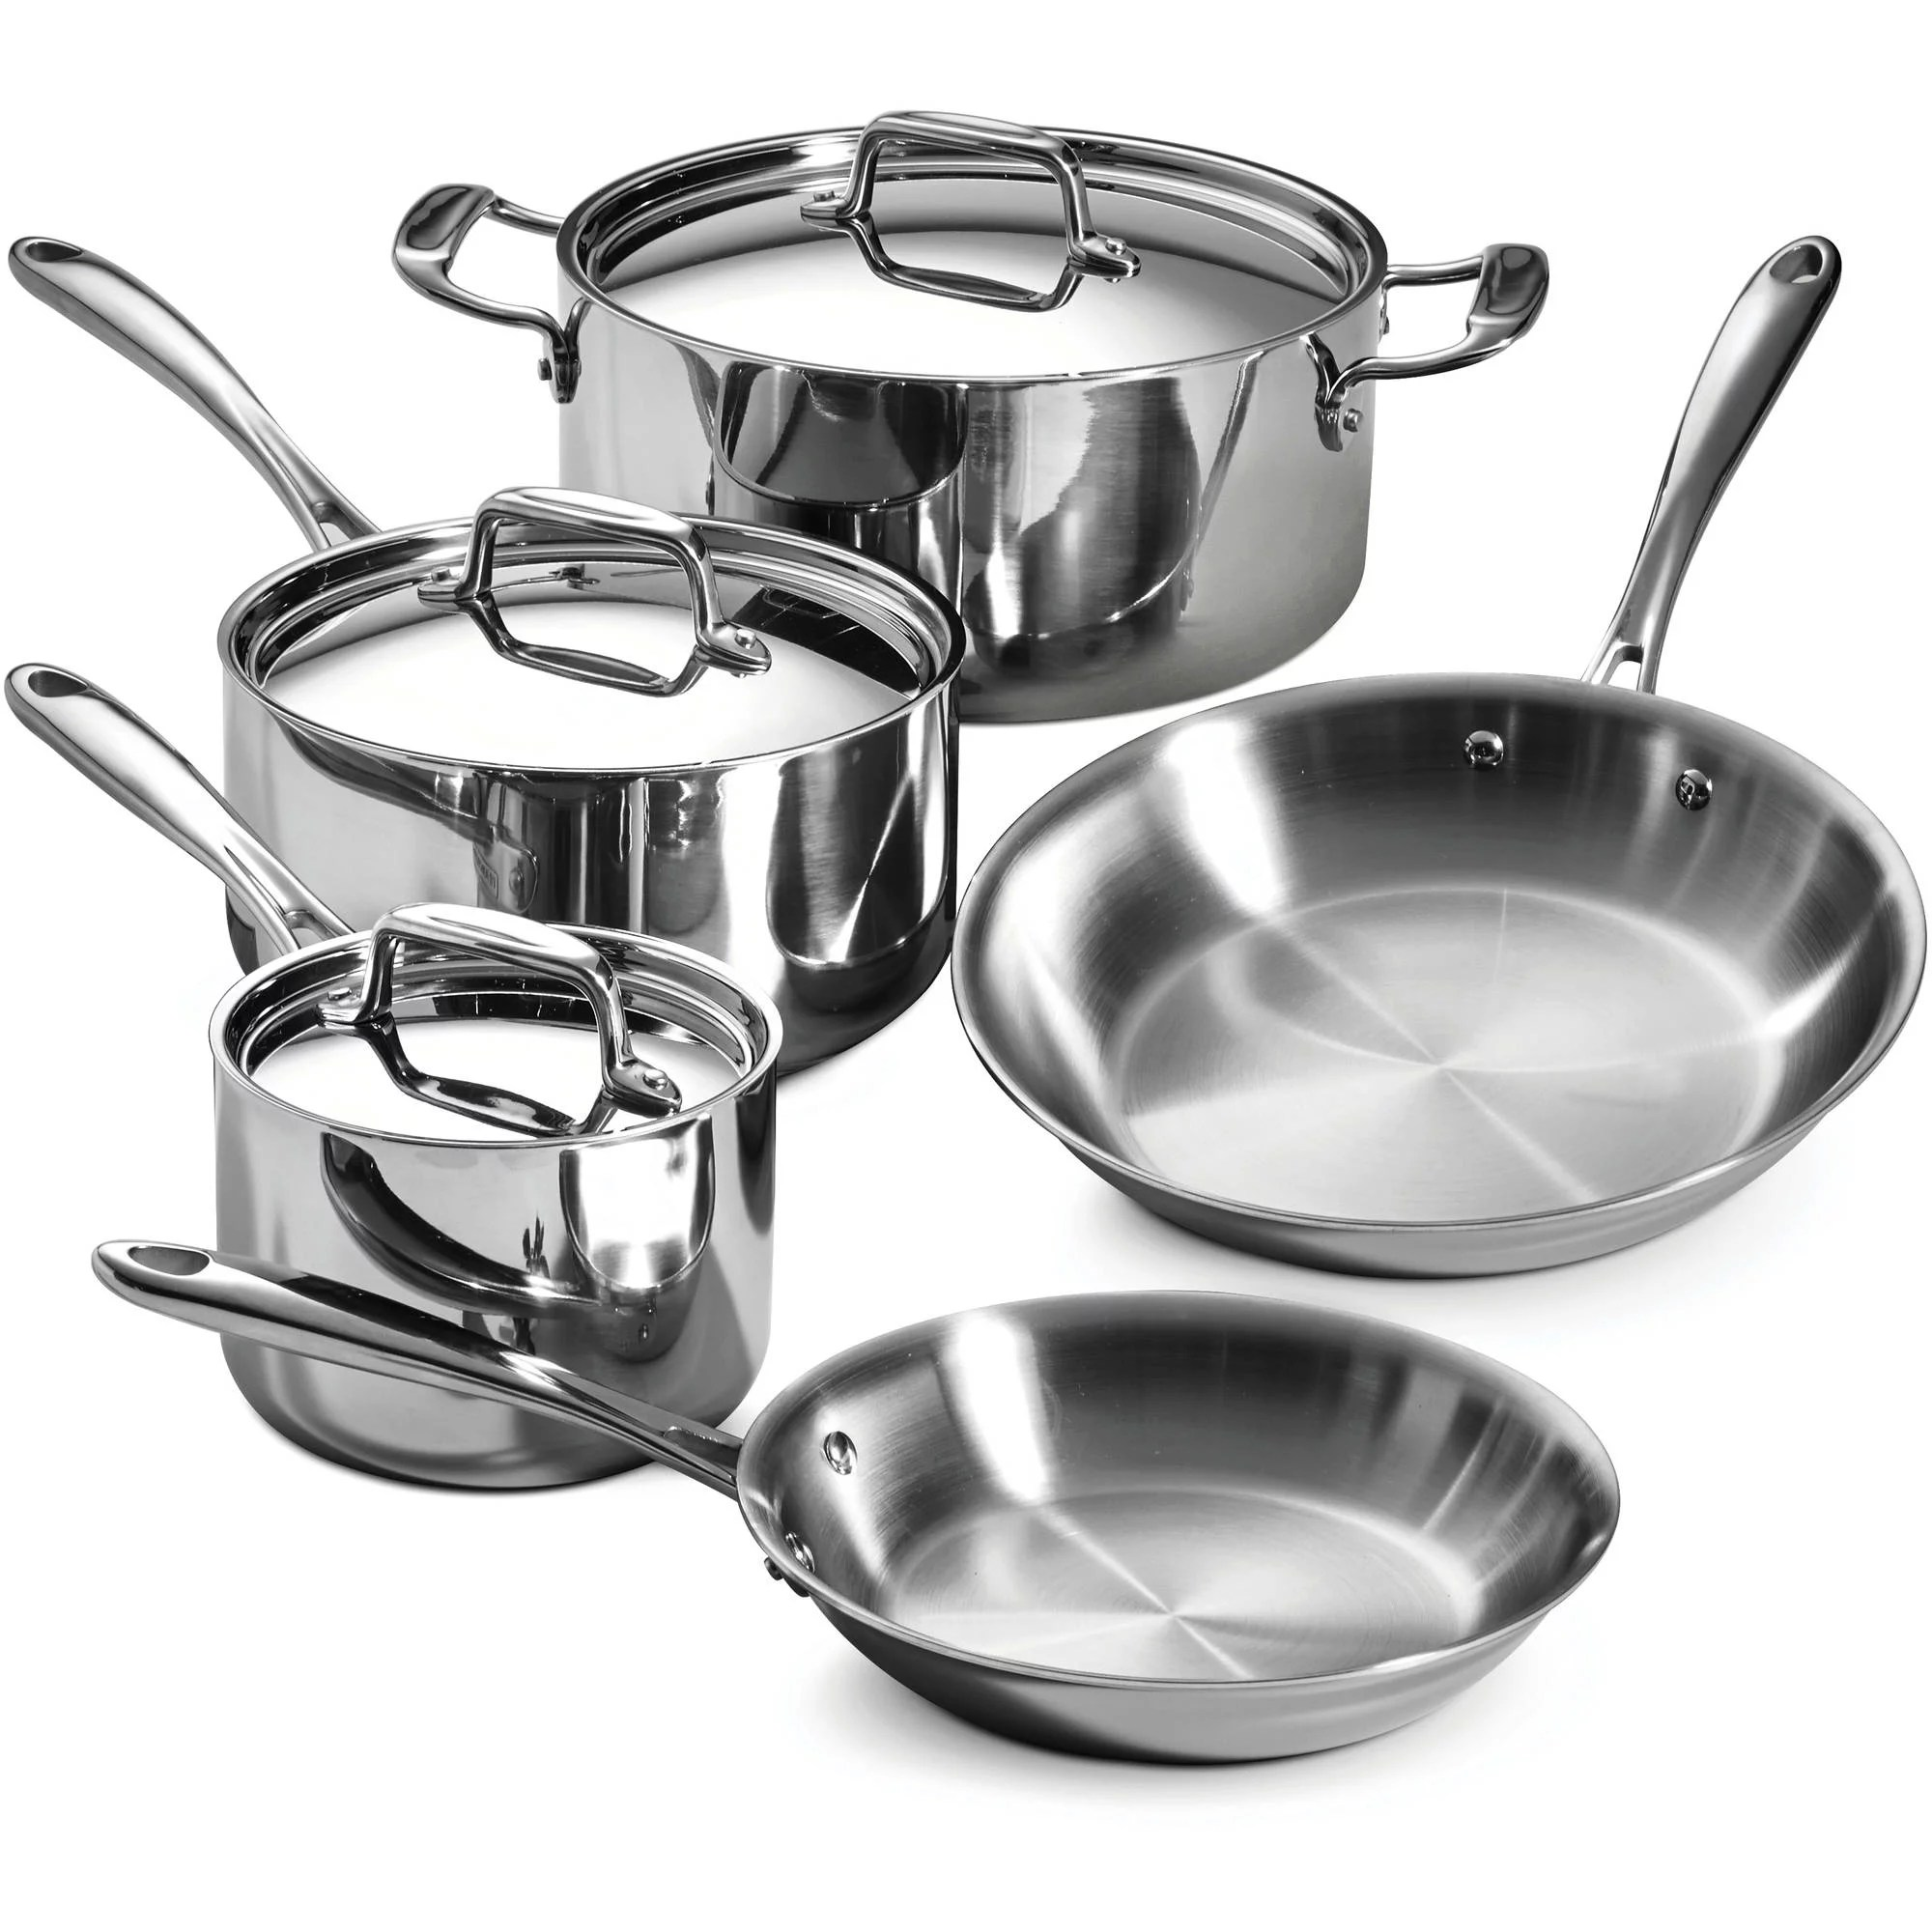 kitchen pots and pans garbage can tramontina 8 piece 18 10 stainless steel tri ply clad cookware set walmart com